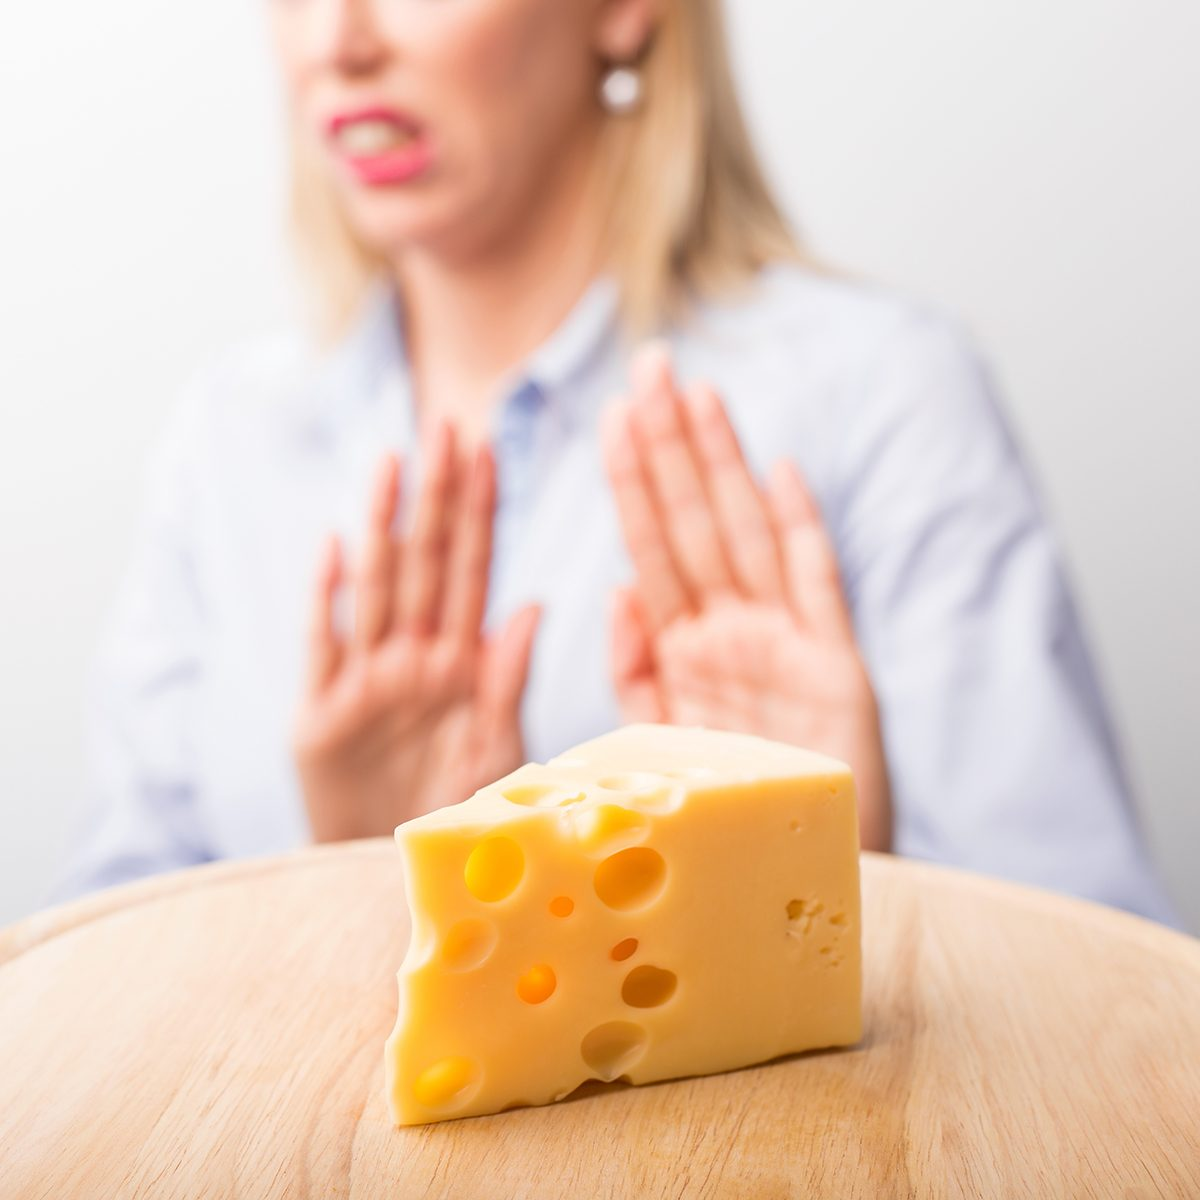 Cheese allergies